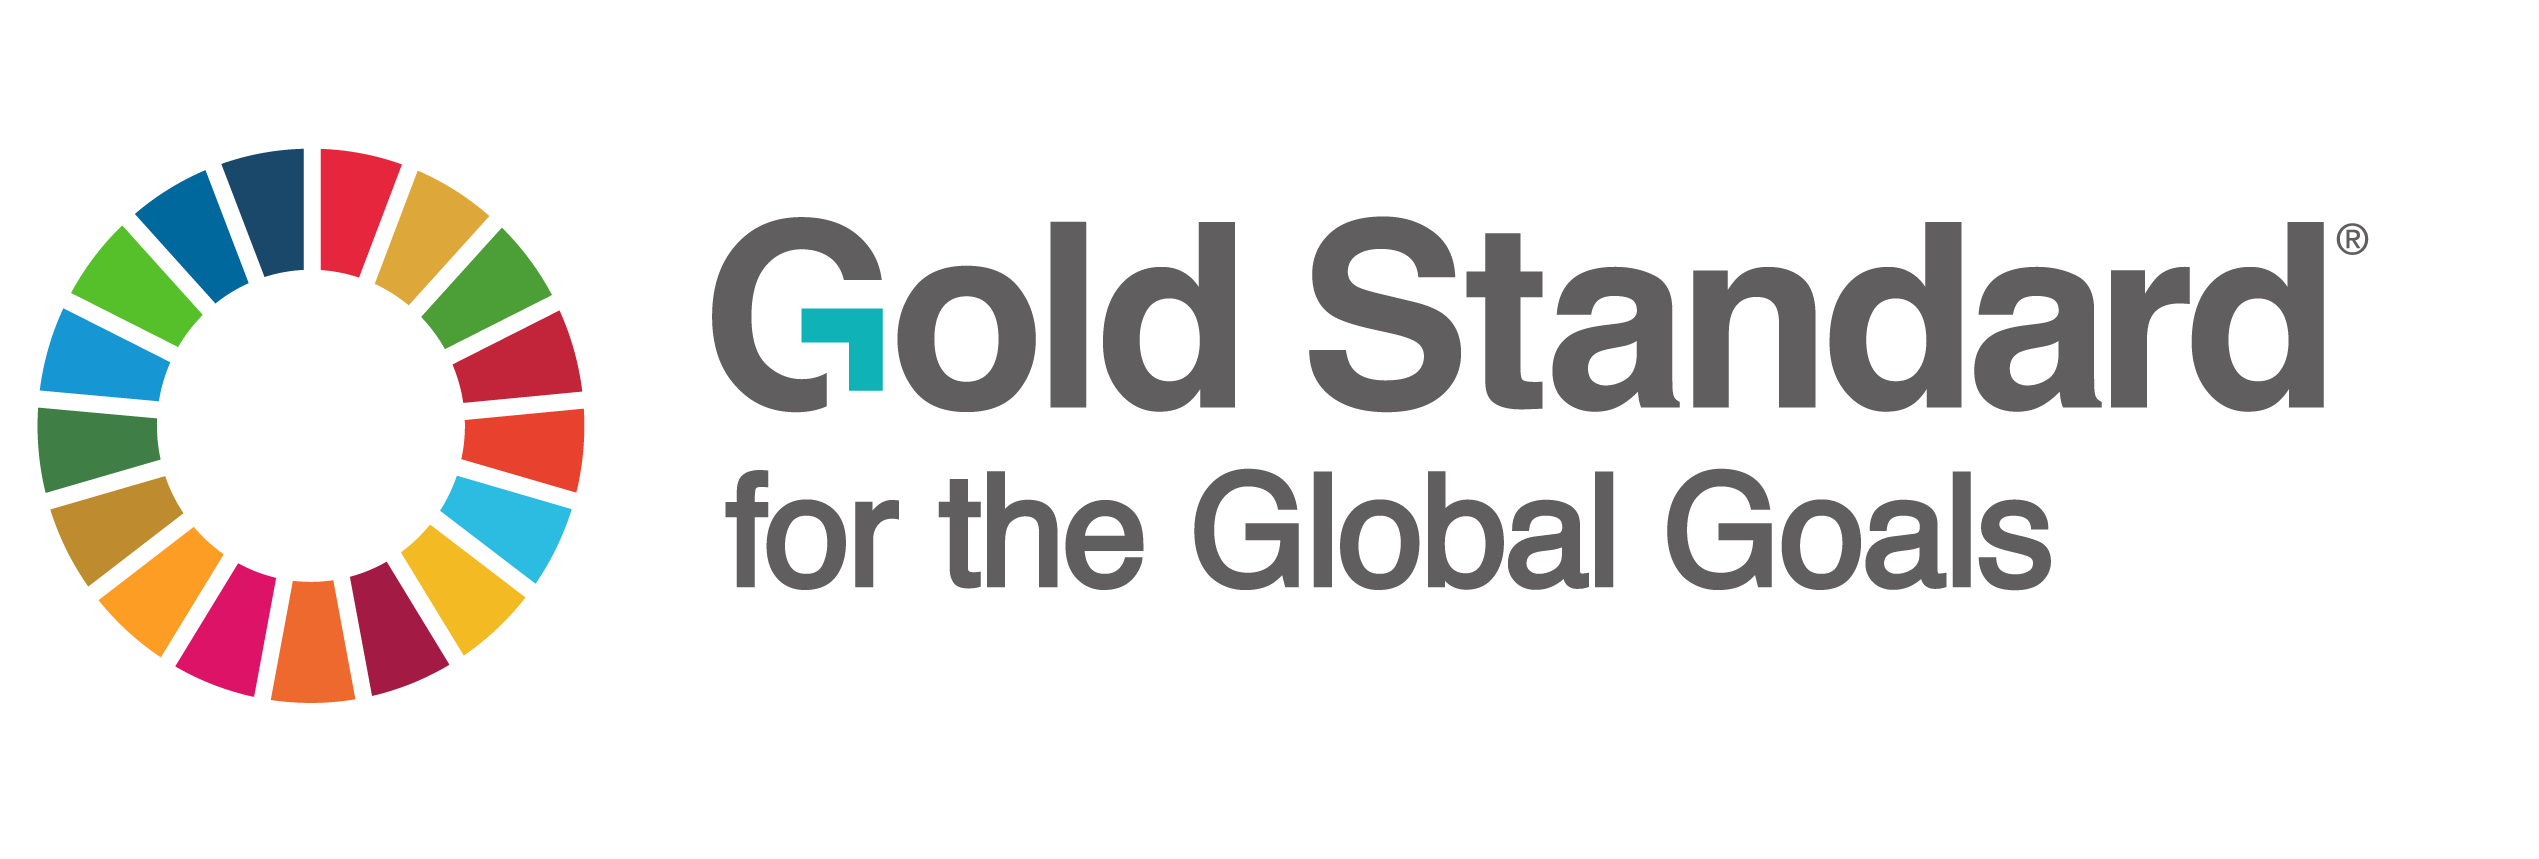 Gold Standard for the Global Goals